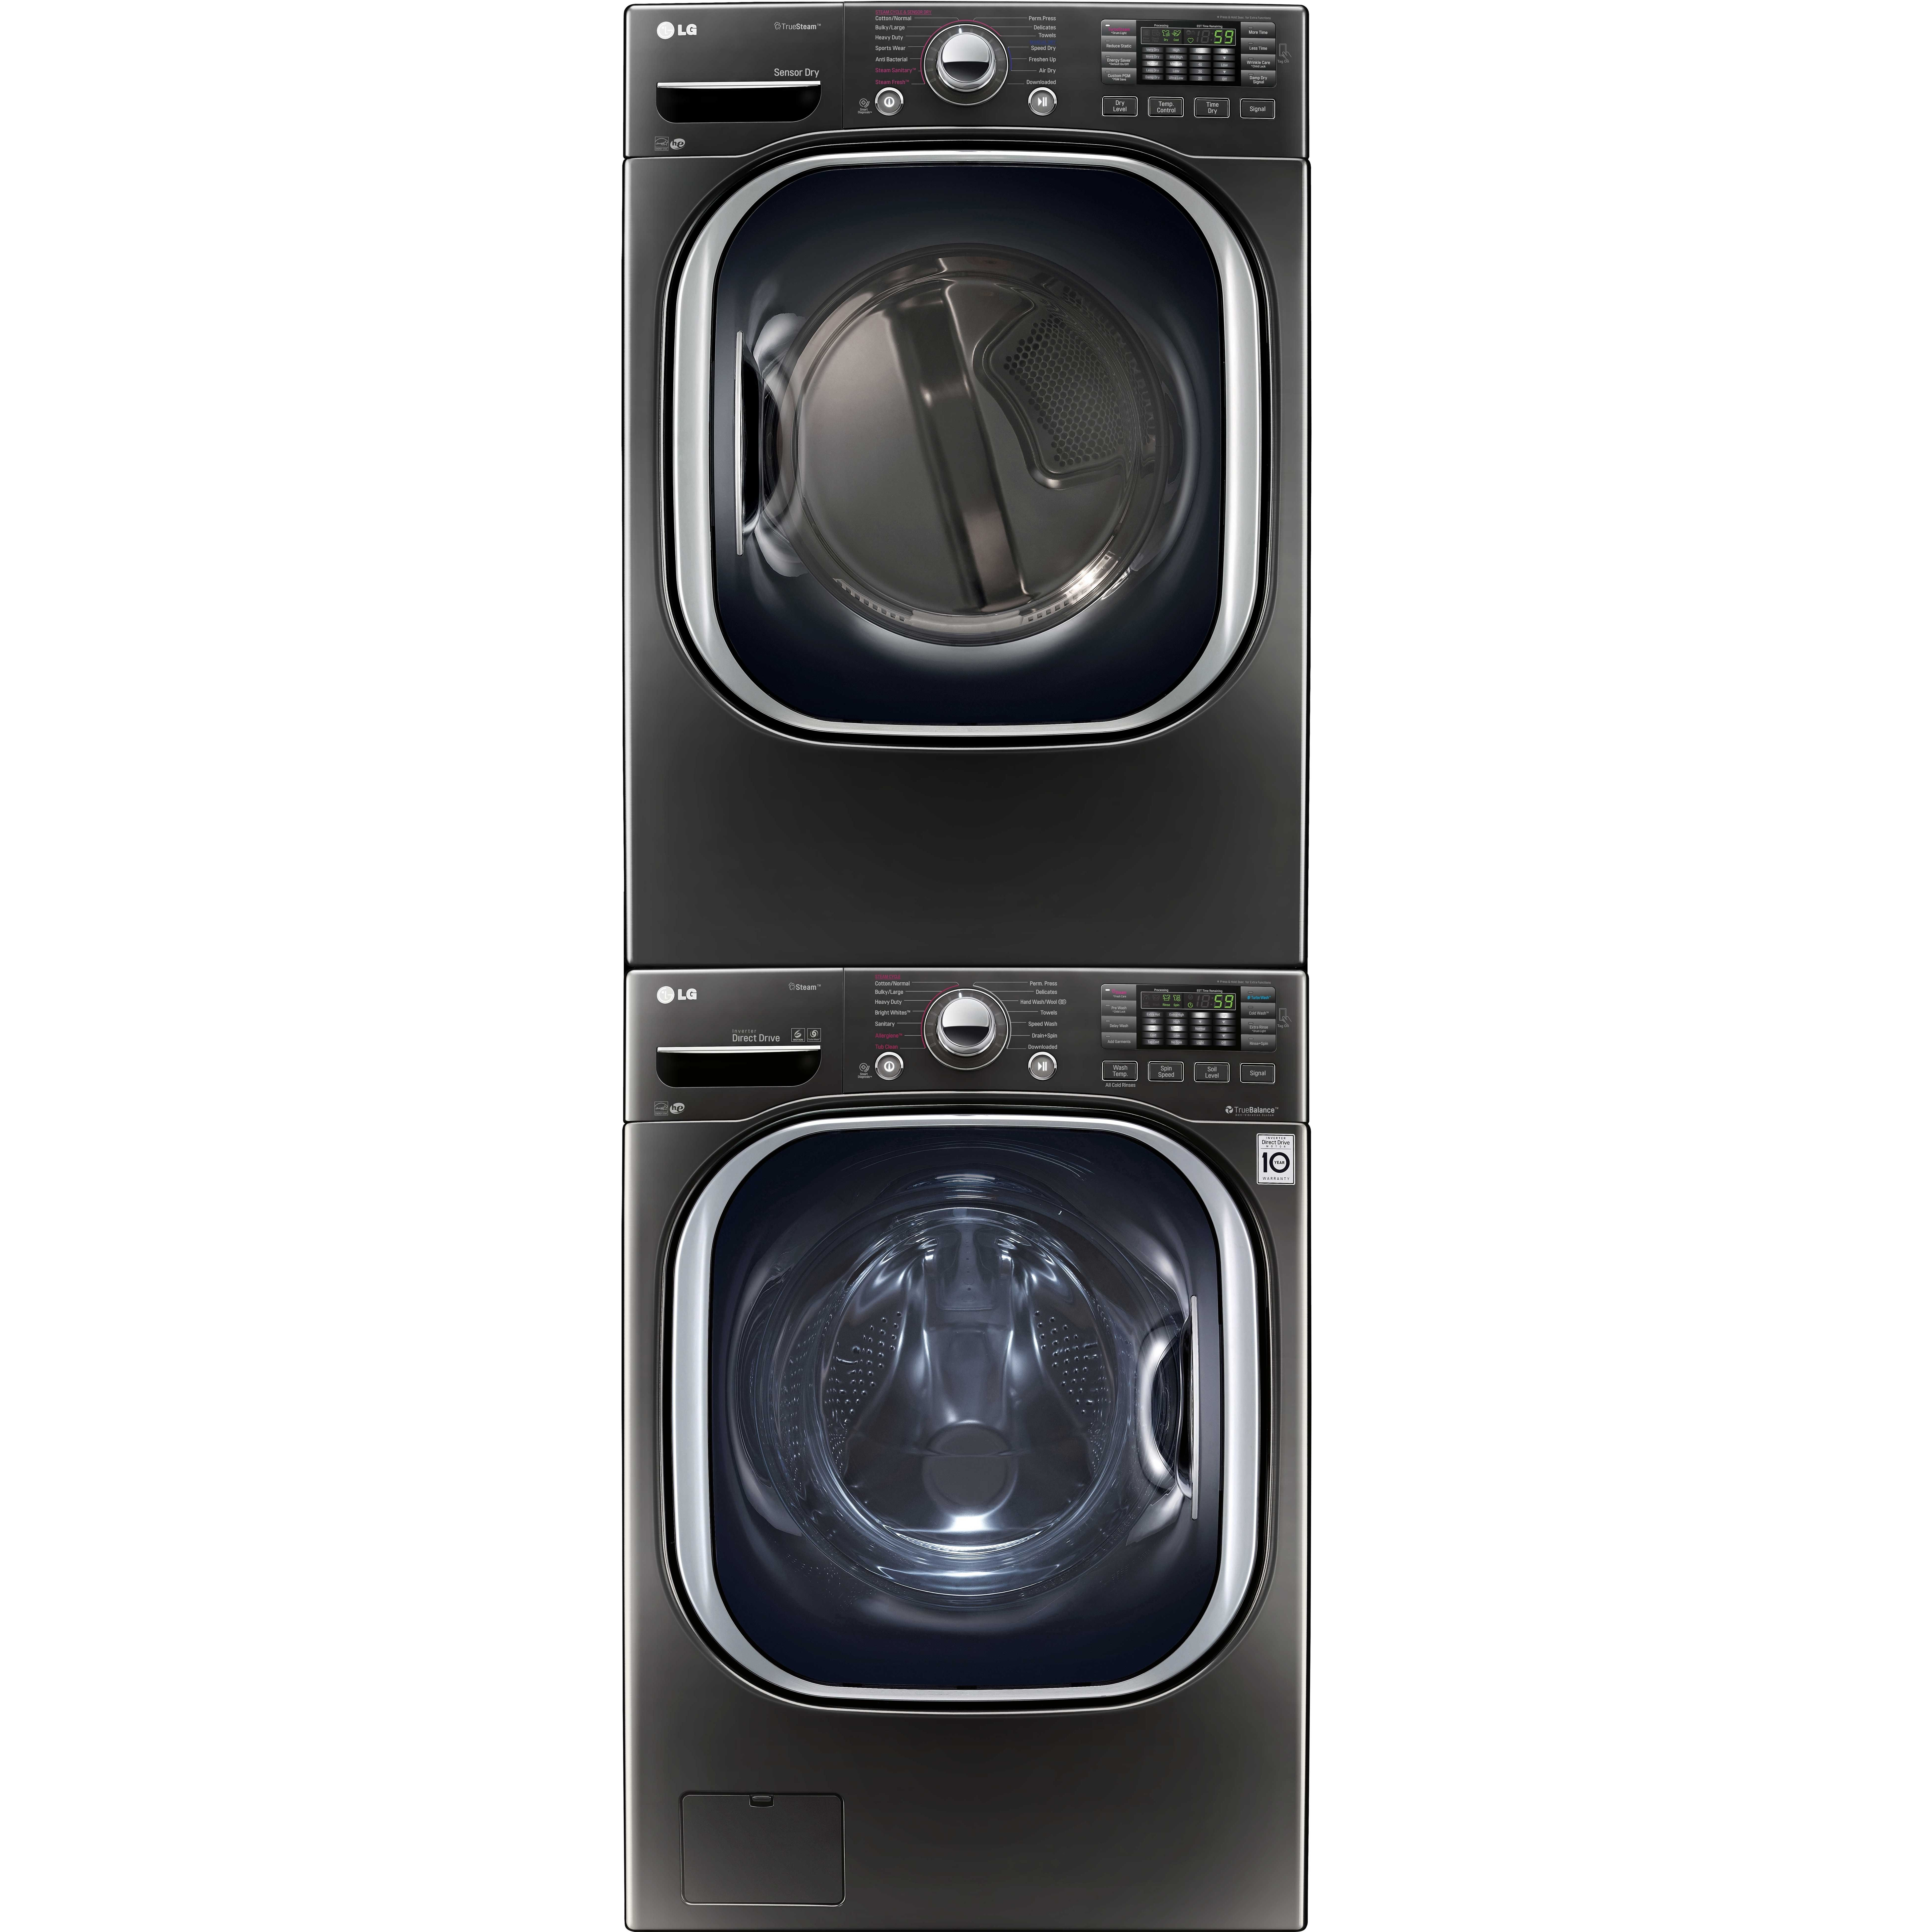 Best Stackable Lg Washer And Dryers For 2018 Washer And Dryer Stackable Washer Stackable Washer And Dryer